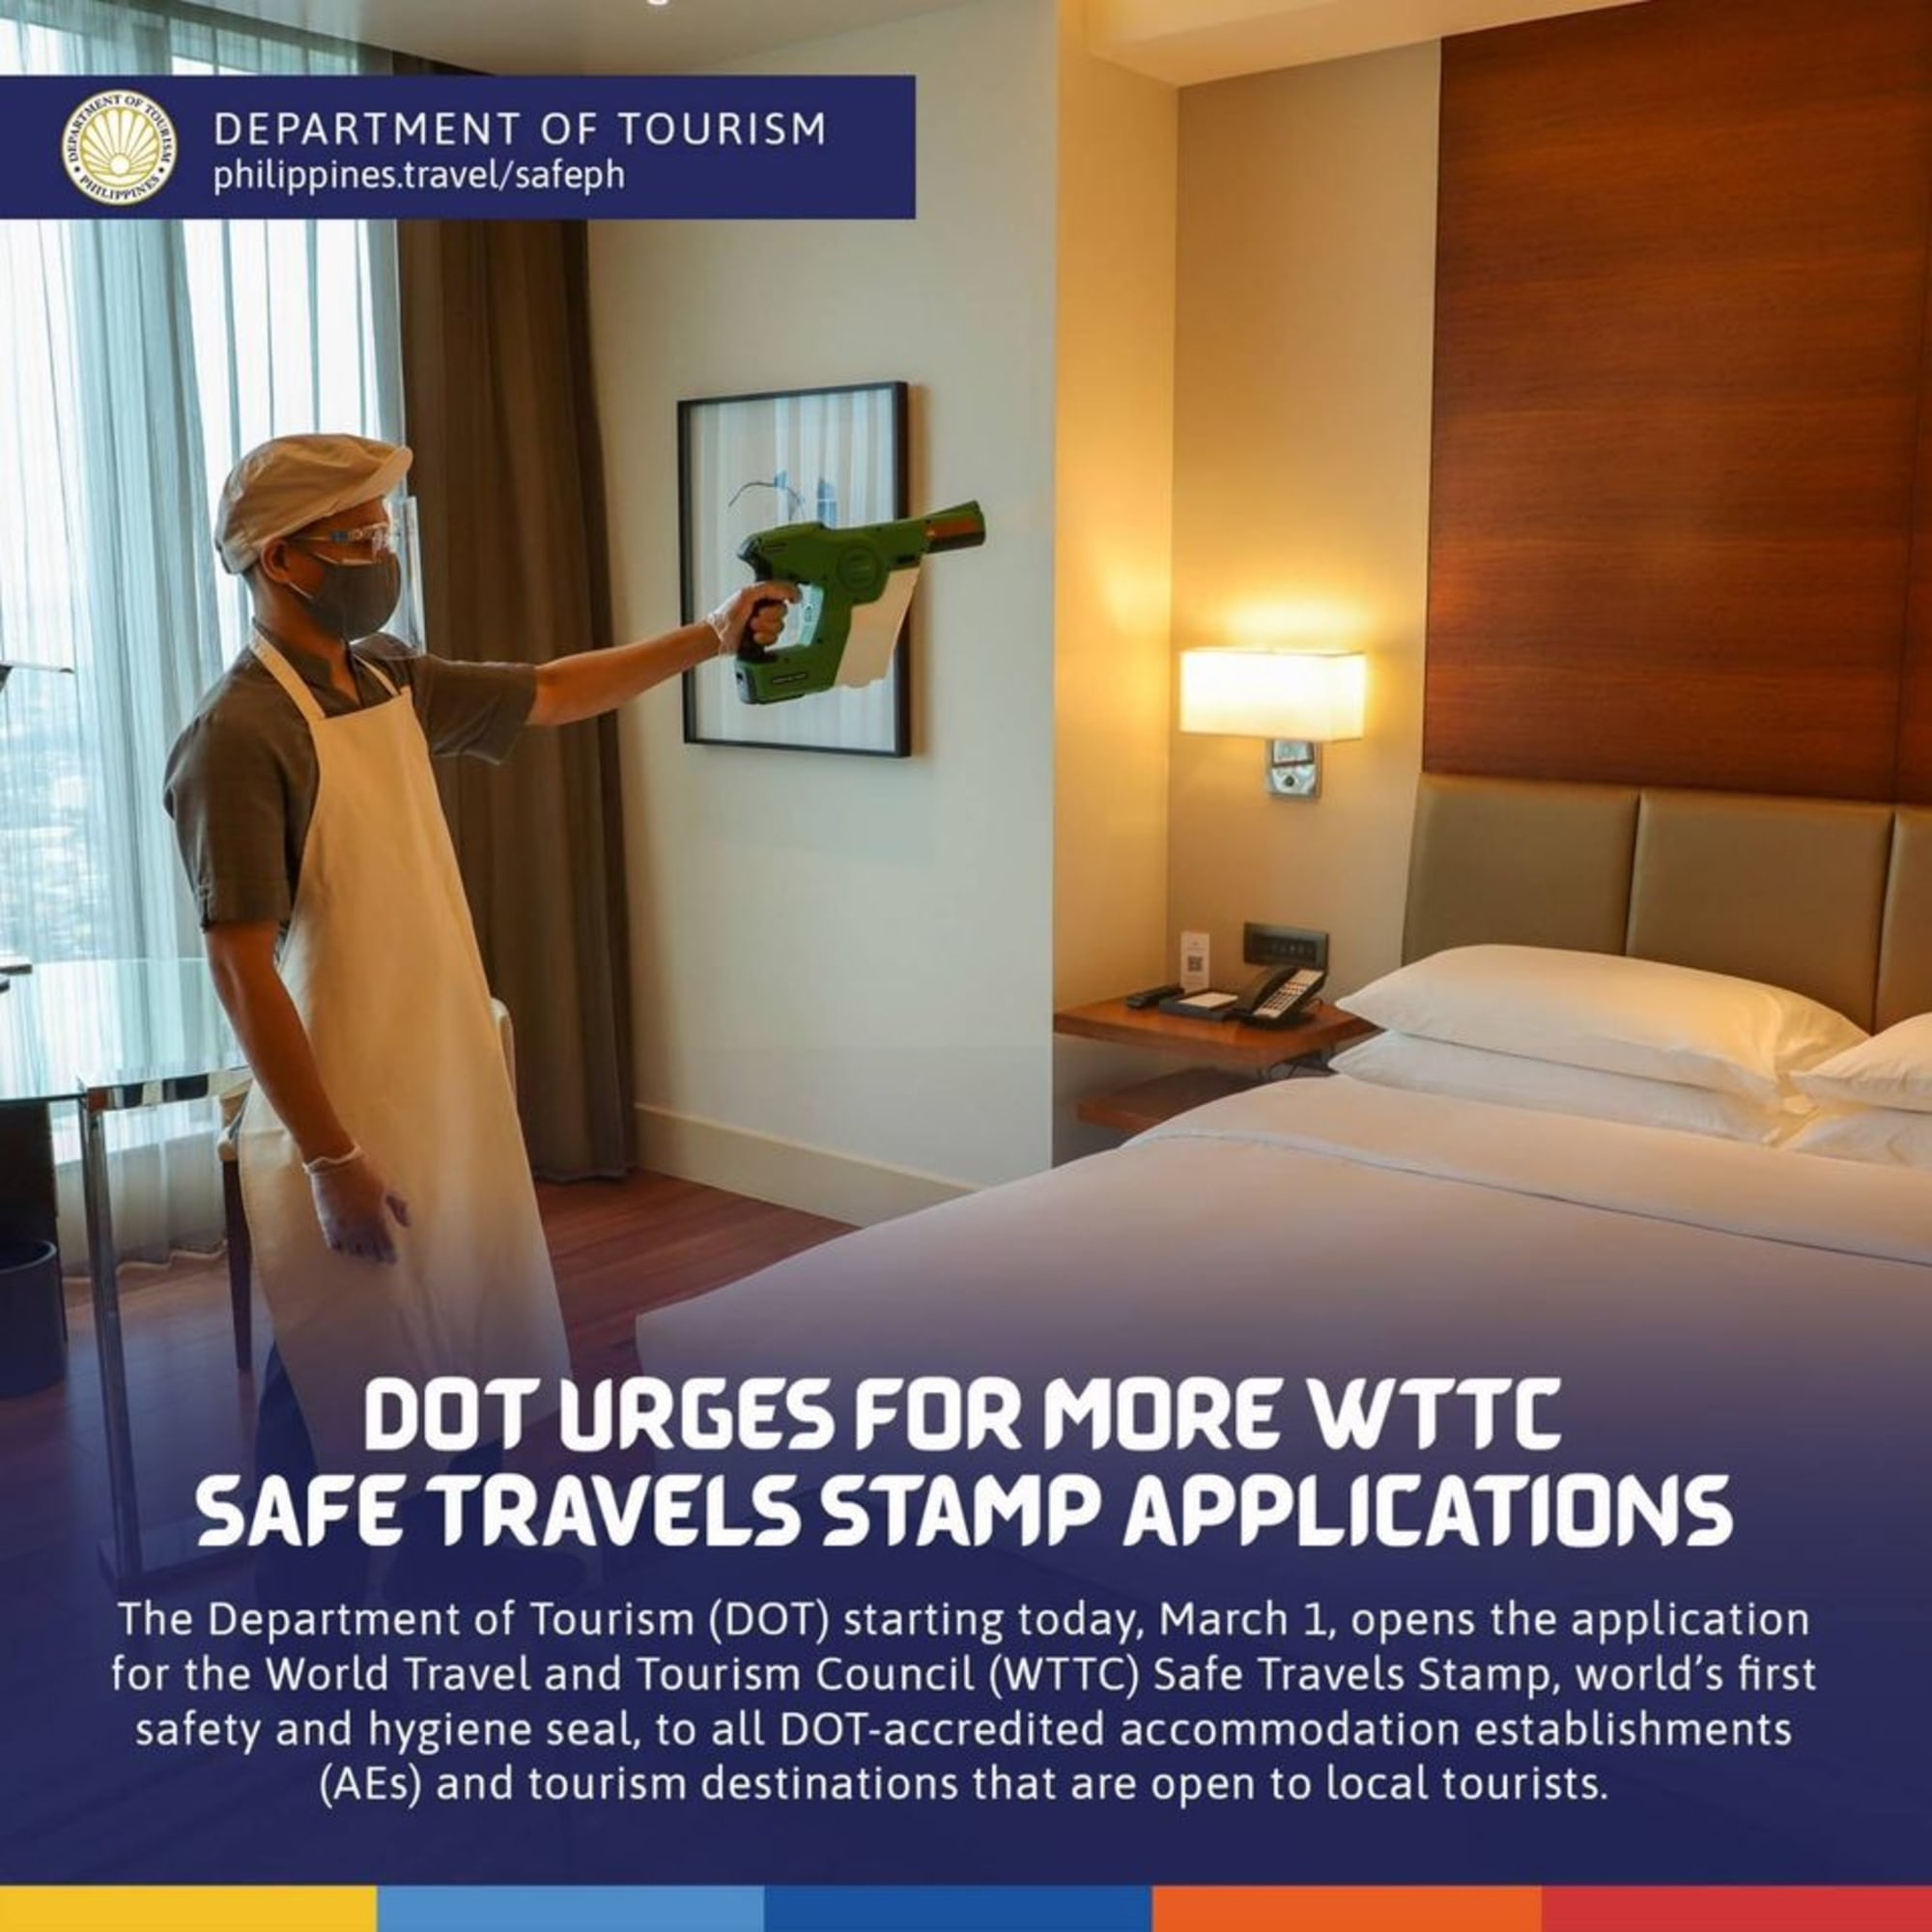 DOT opens the application for the World Travel and Tourism Council (WTTC) Safe Travels Stamp